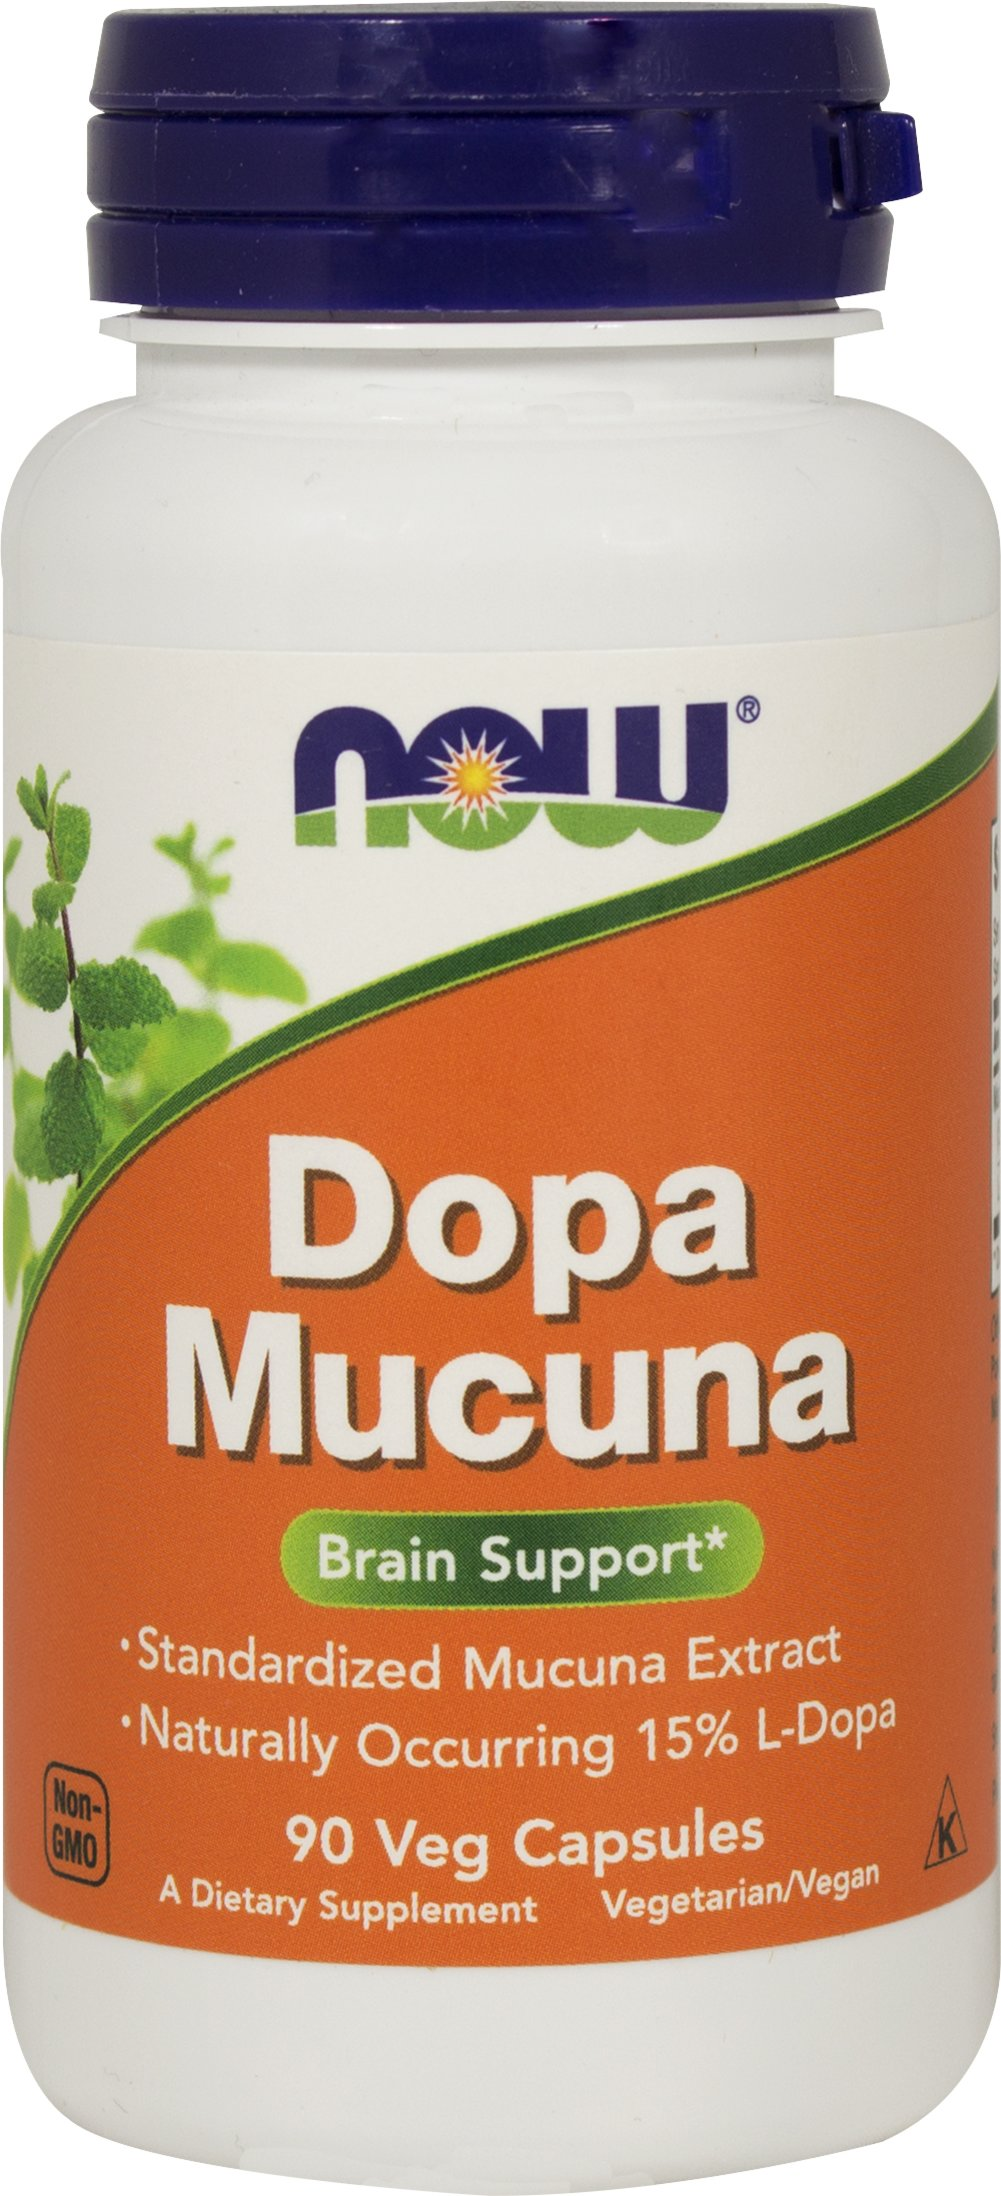 DOPA Mucuna 400 mg  90 Vegi Caps 400 mg $11.49